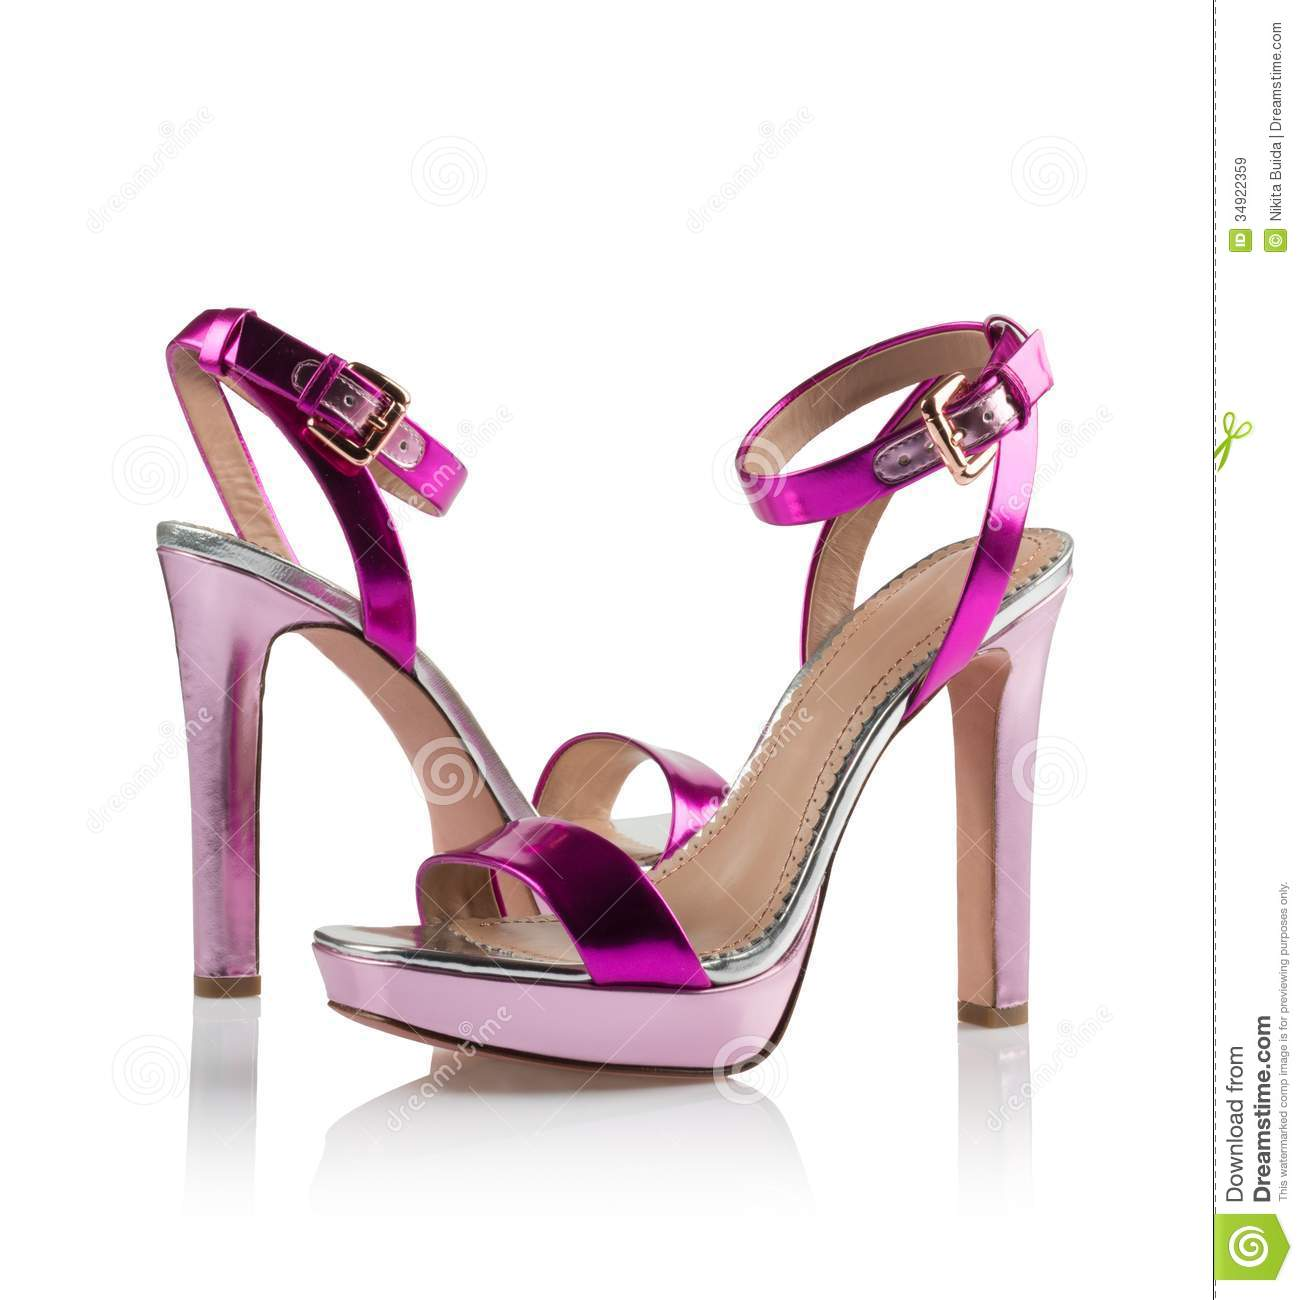 pink pair of shoes royalty free stock images image